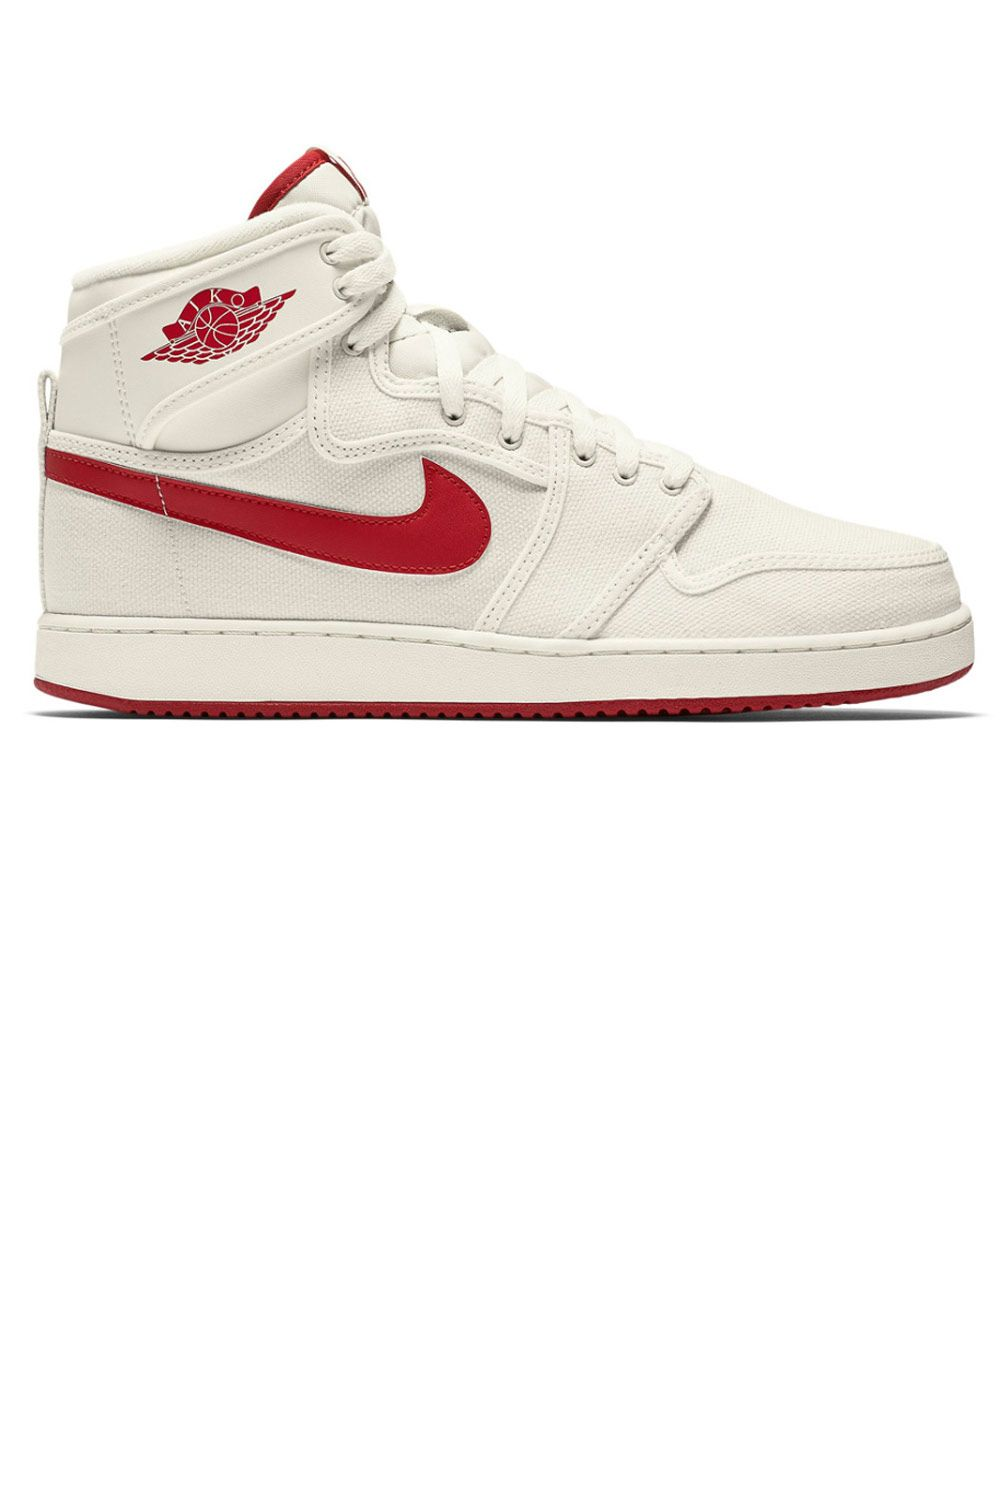 Coolest Sneakers The These Are Of 2016Geeking 63 Nike YeHb9IEWD2